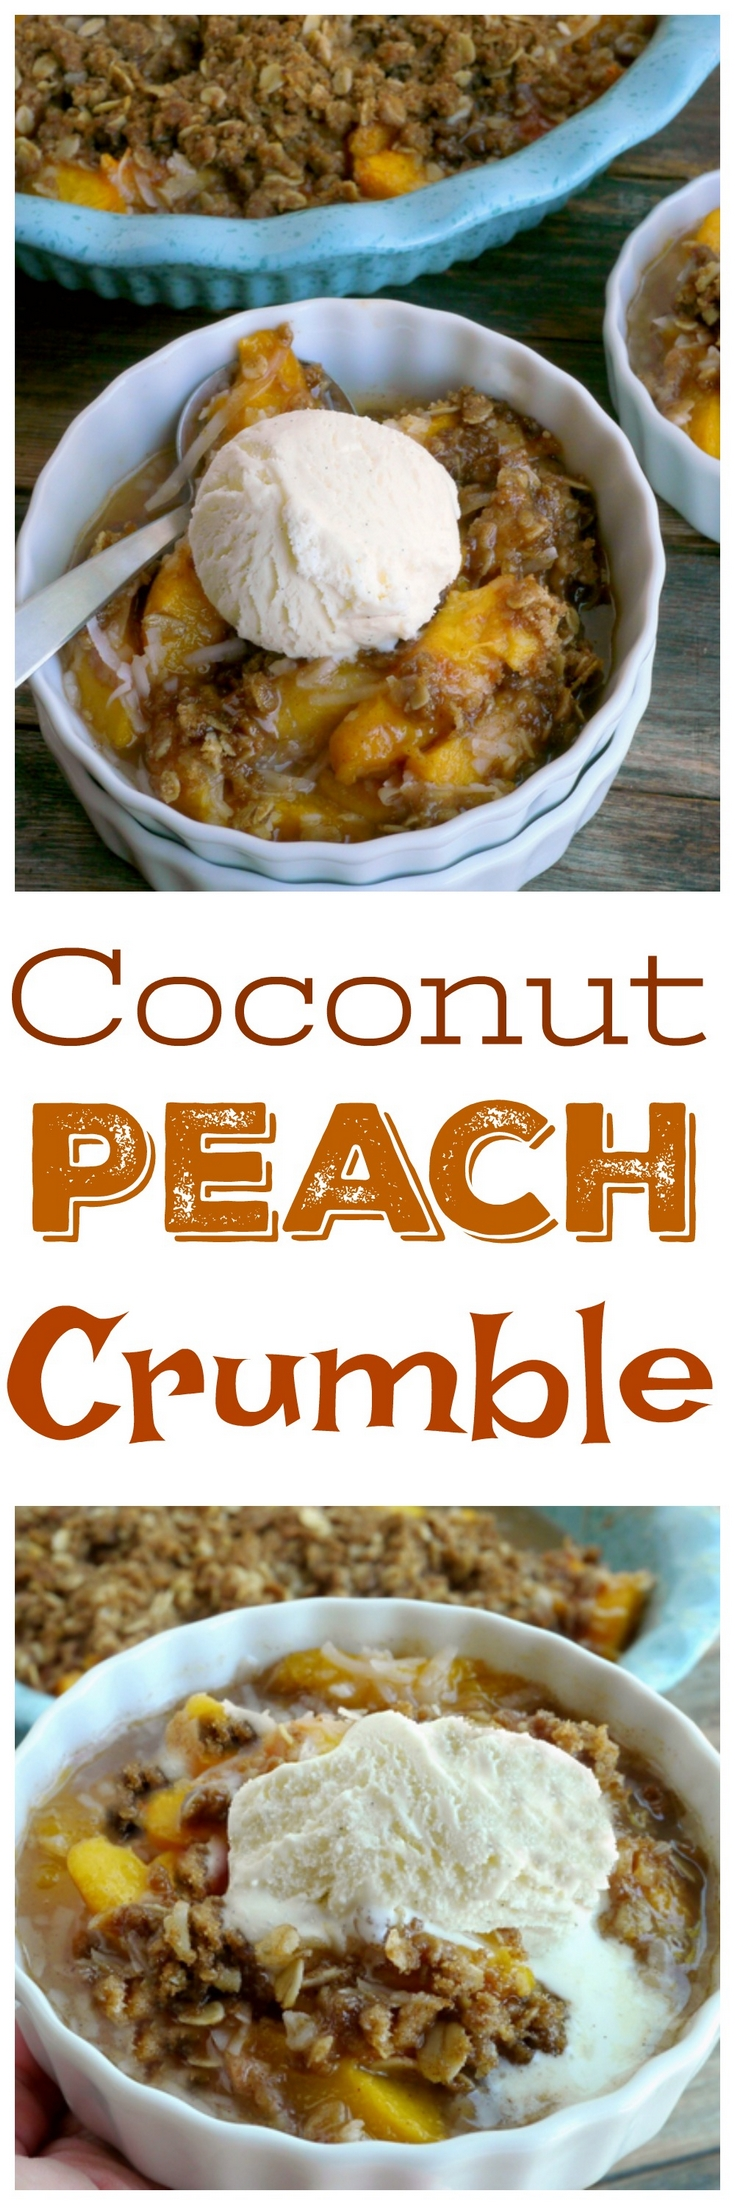 Take advantage of the season's sweetest and ripest fruit with this Coconut Peach Crumble. And don't forget that scoop of vanilla bean ice cream on top from NoblePig.com #noblepig #peach #peachdessert #peaches #coconutdessert via @cmpollak1